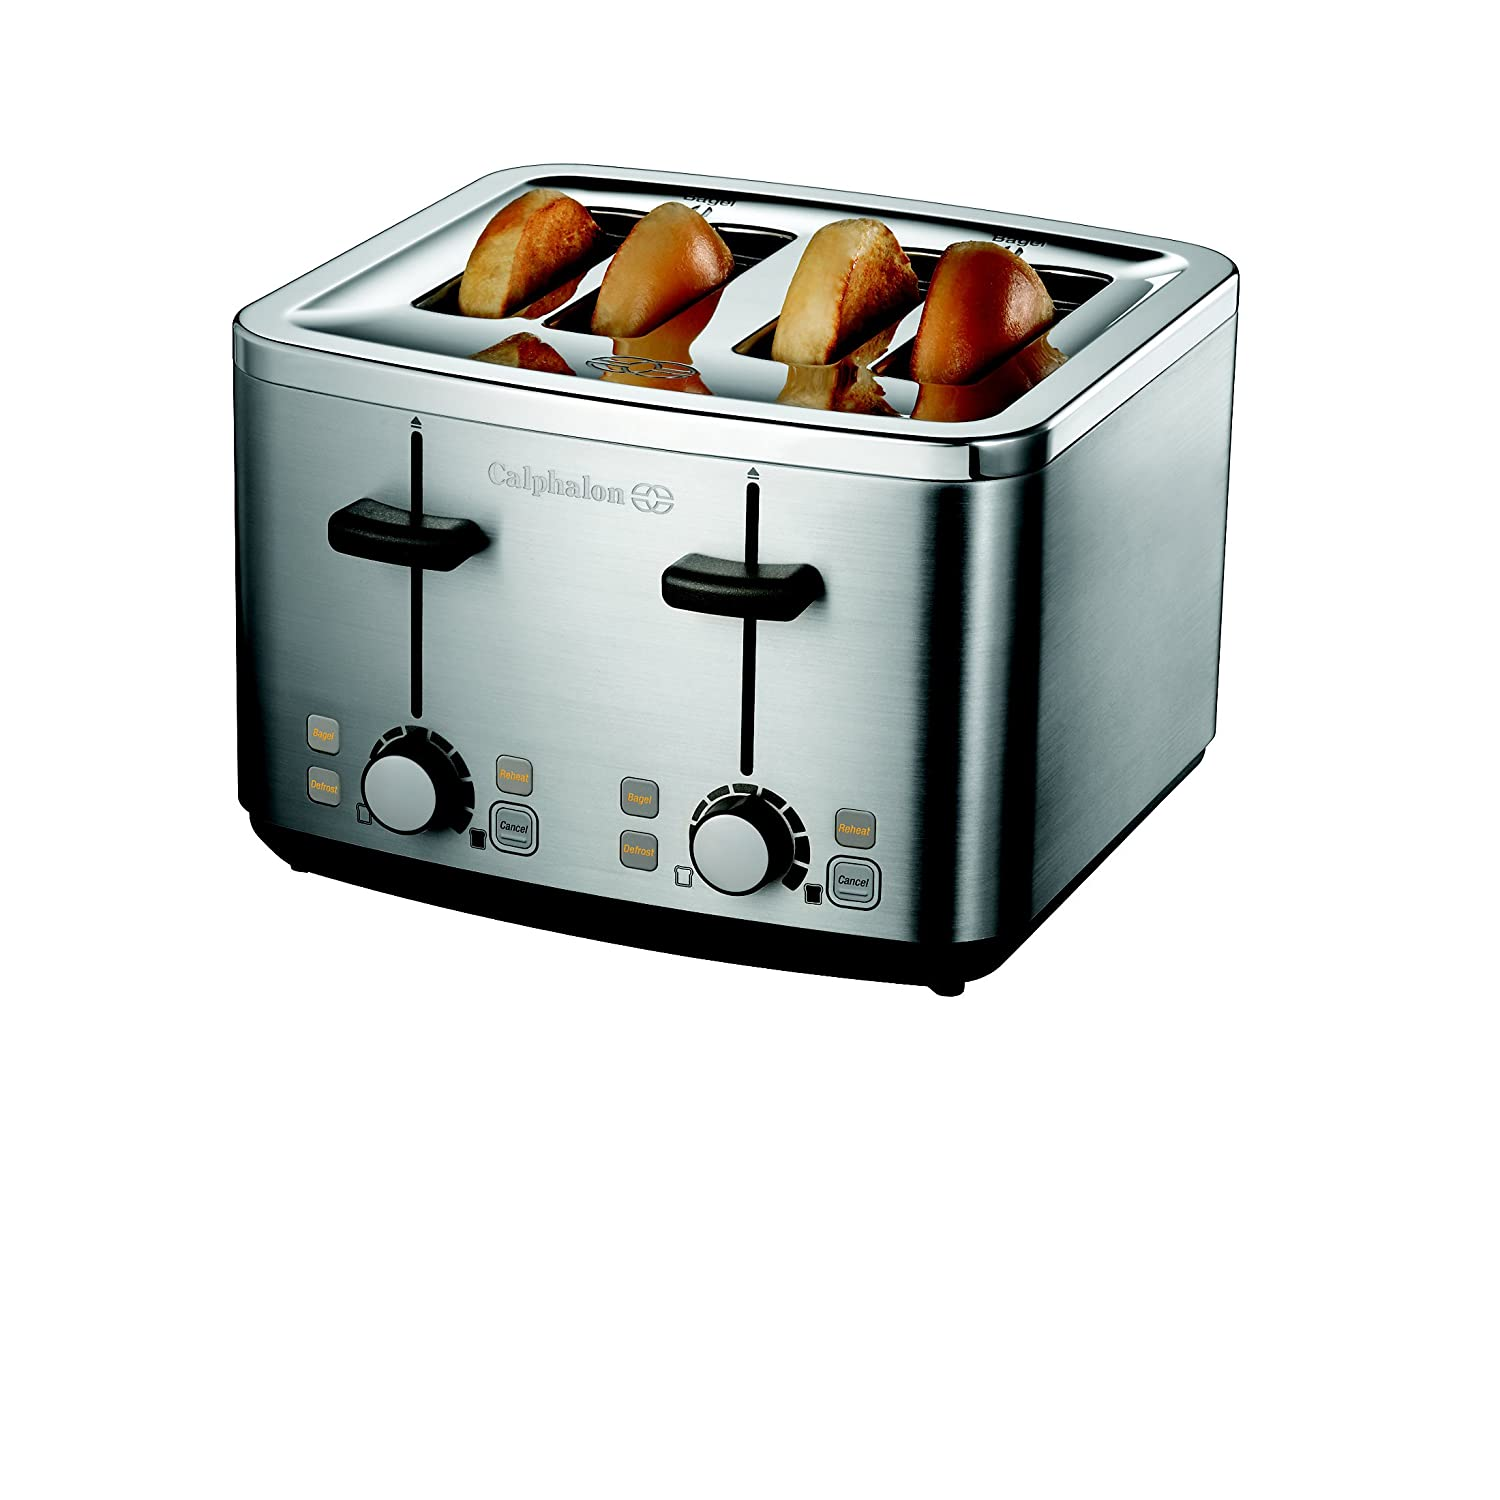 convection watch calphalon youtube xl digital toaster oven